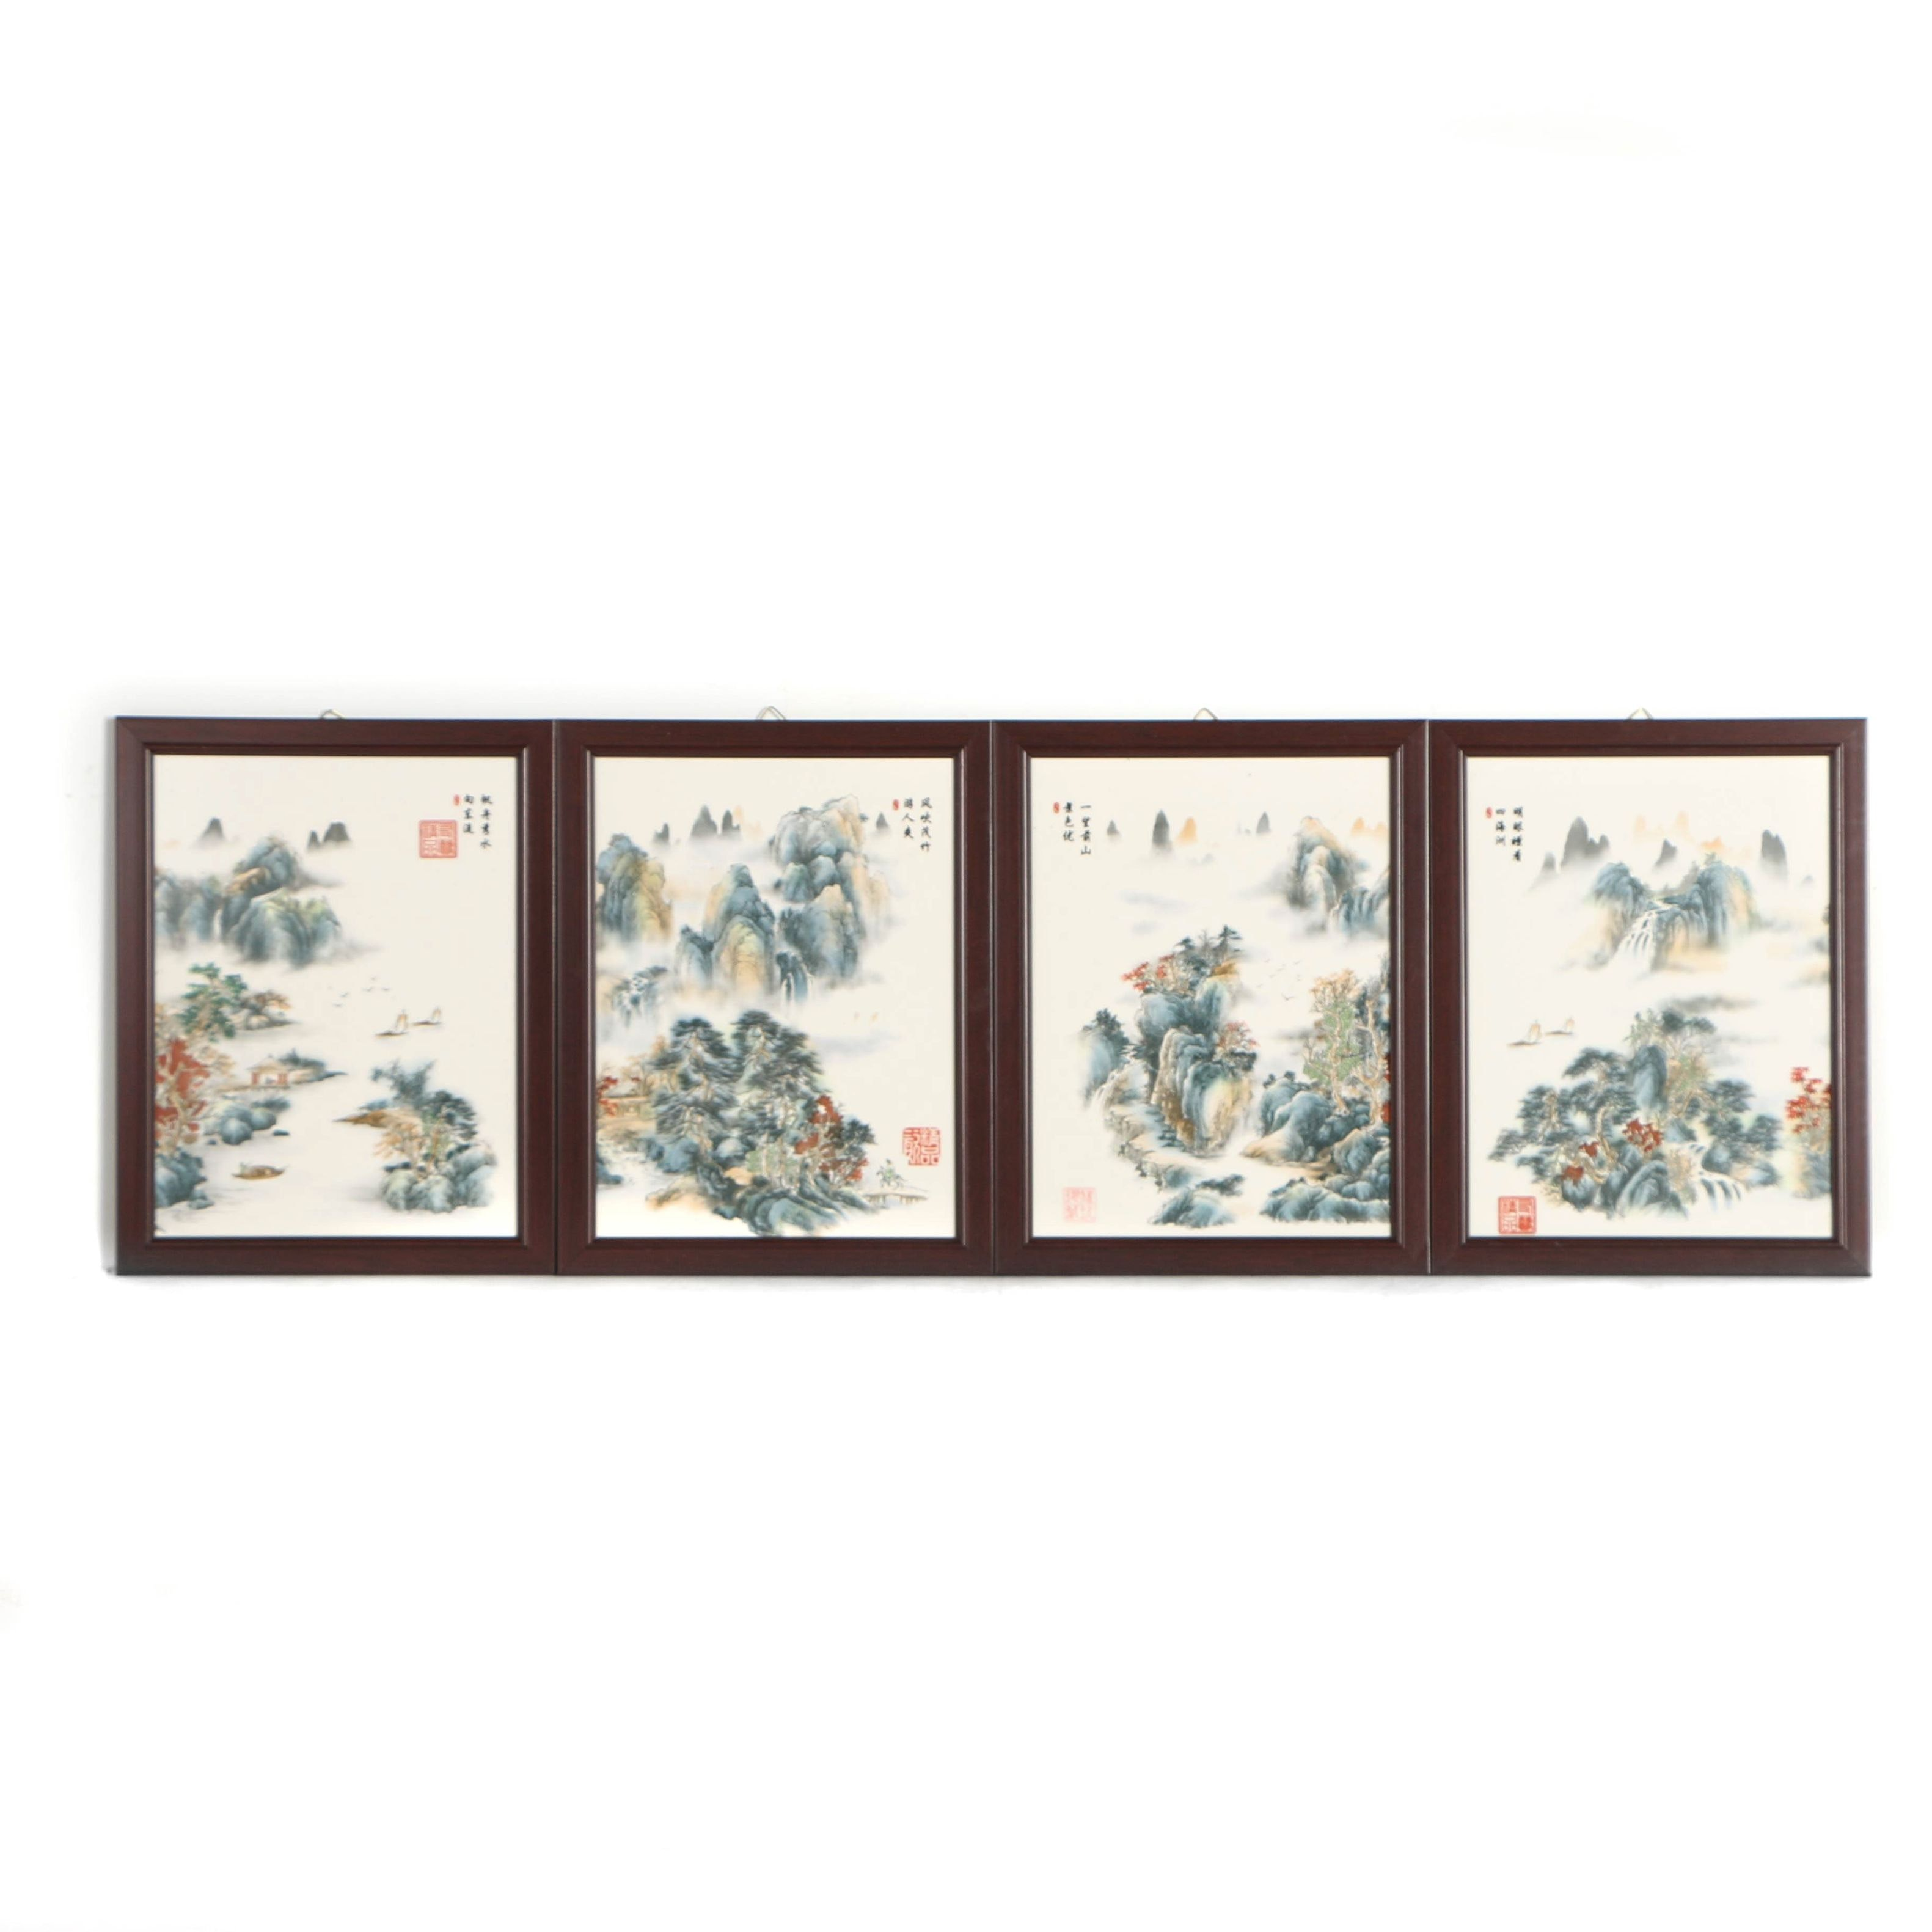 Chinese Offset Lithographs on Tile